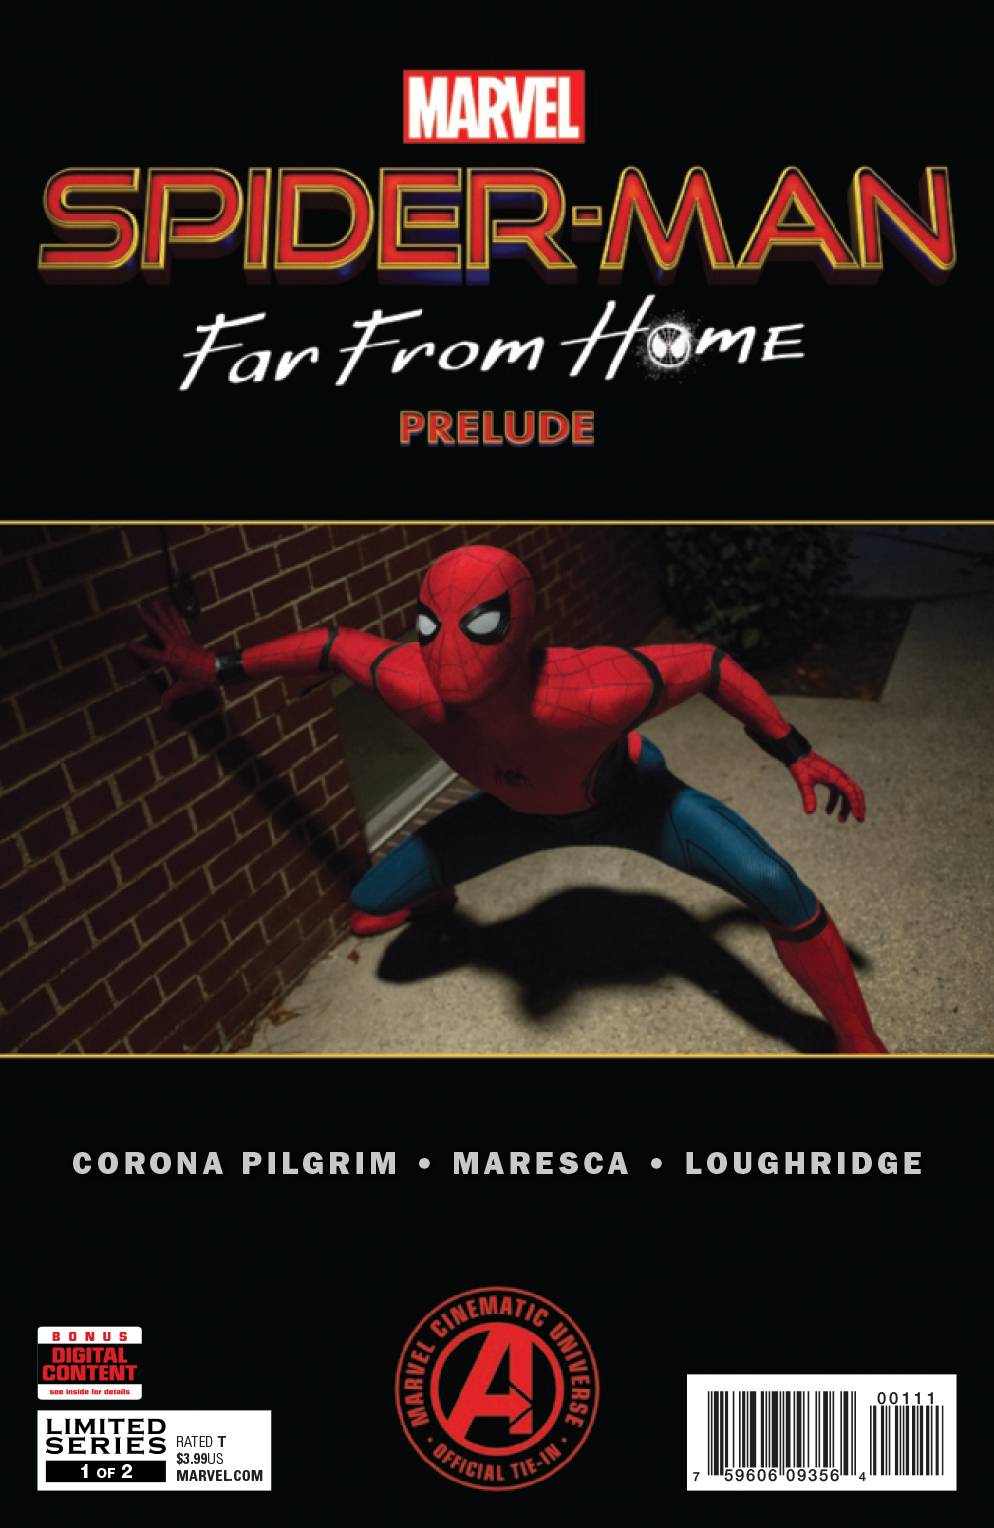 SPIDER-MAN FAR FROM HOME PRELUDE #1 (OF 2)